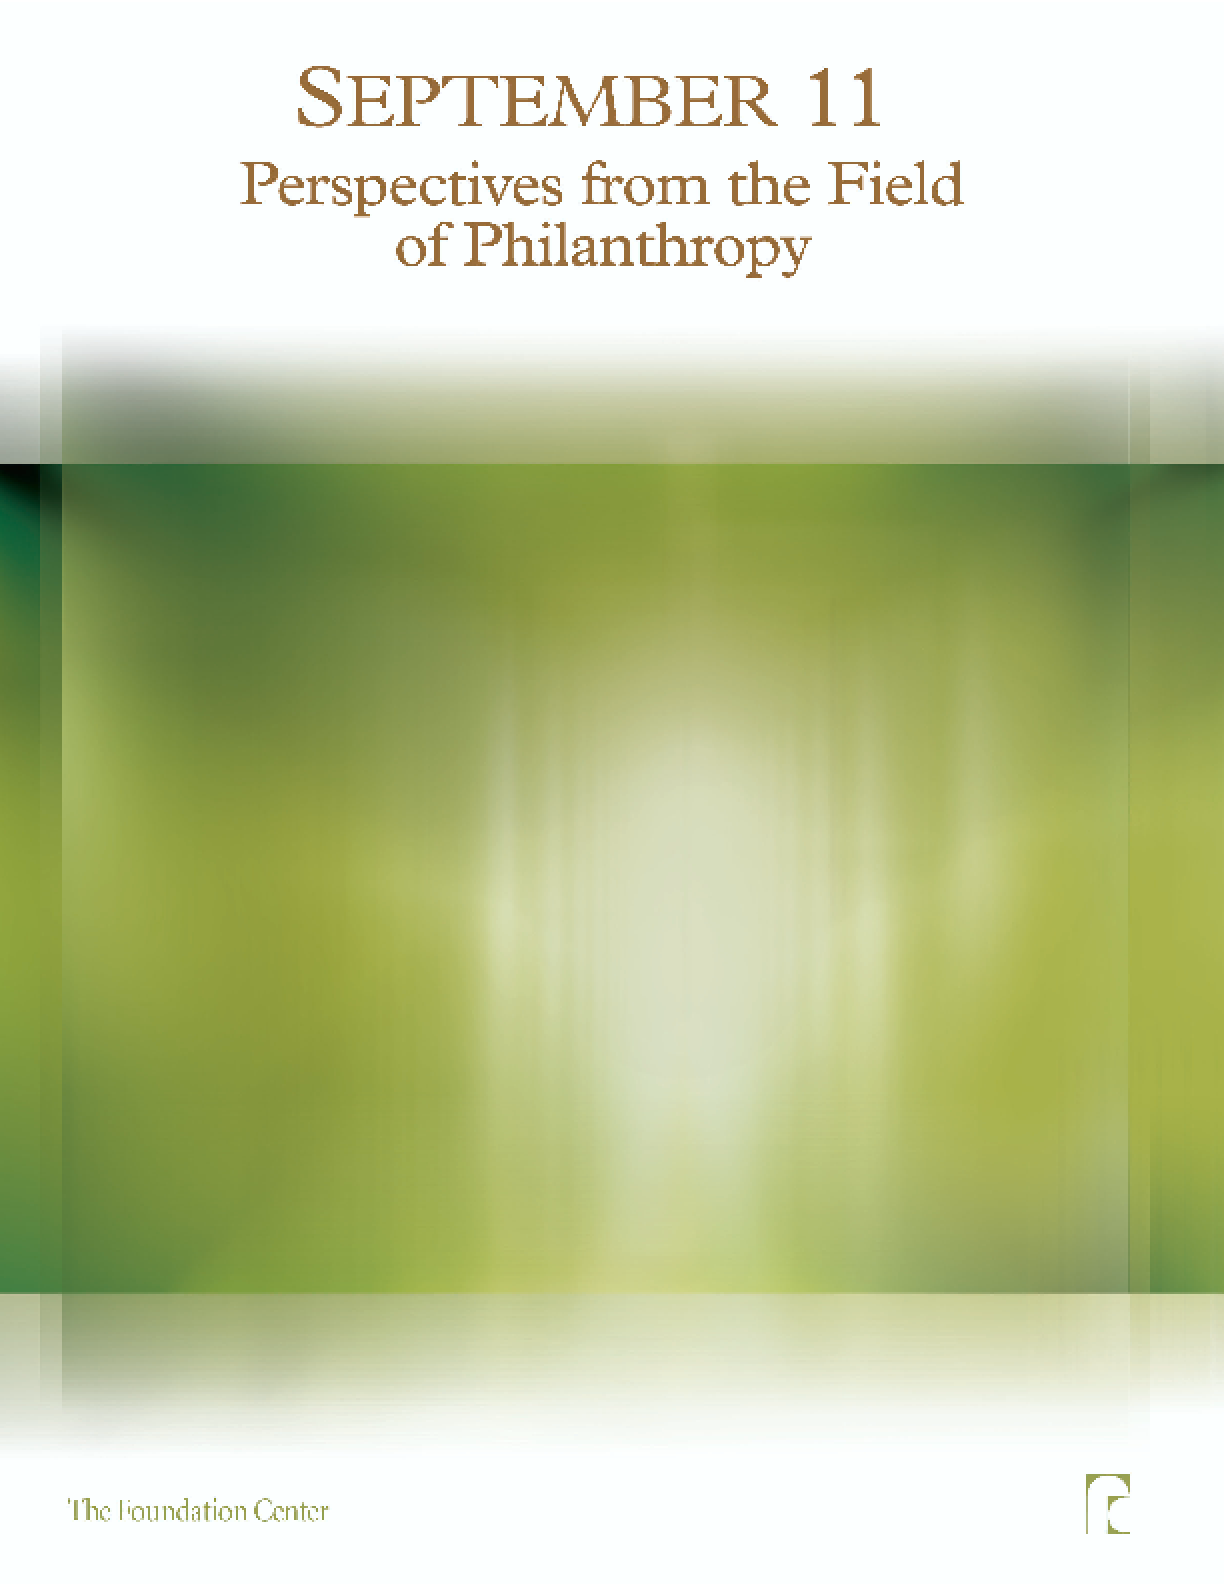 September 11: Perspectives From the Field of Philanthropy